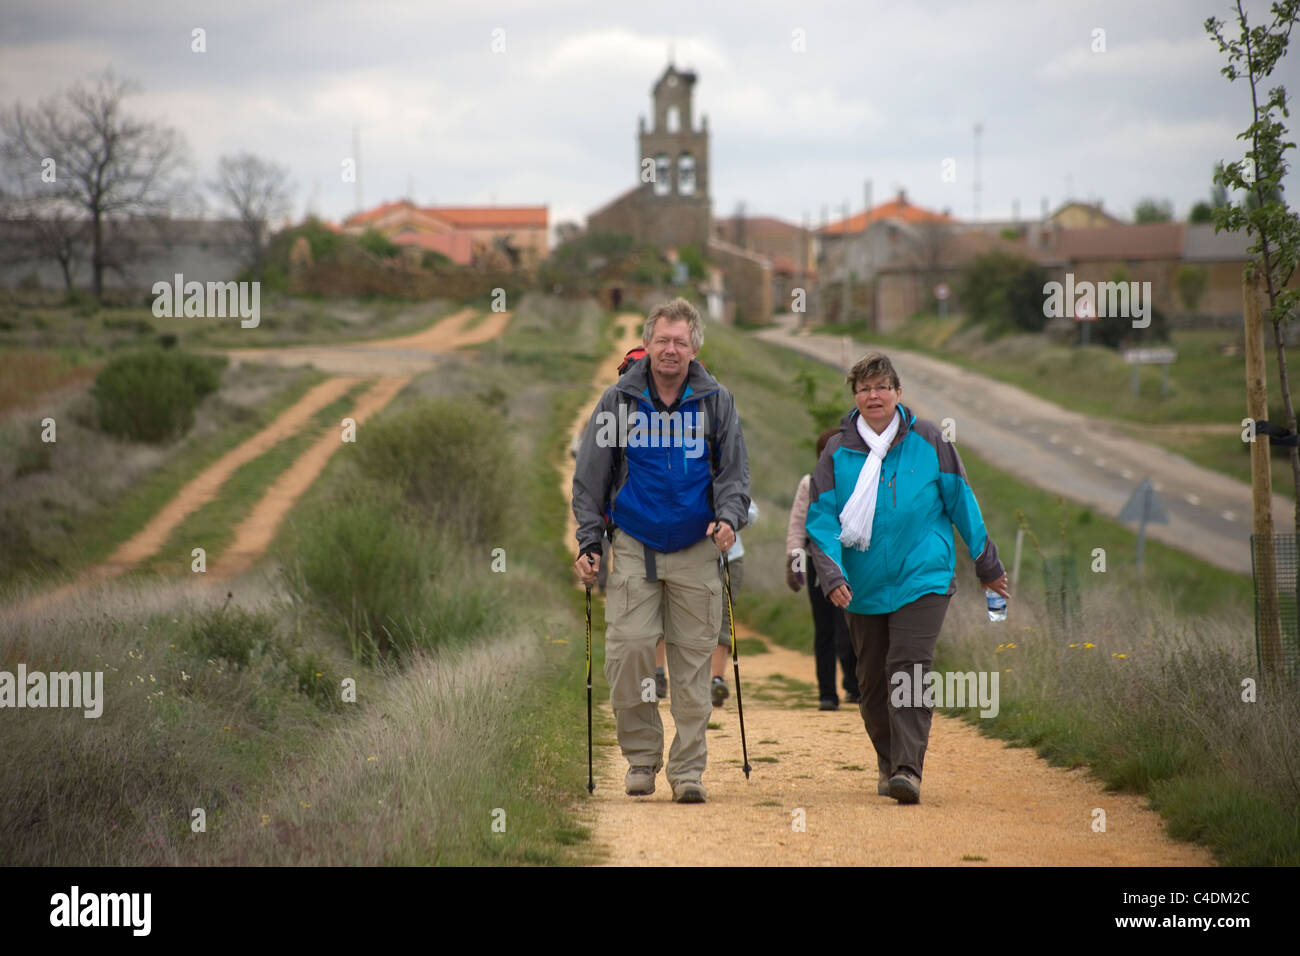 A couple leaves El Ganso village in the French Way that leads to Santiago, Spain. - Stock Image